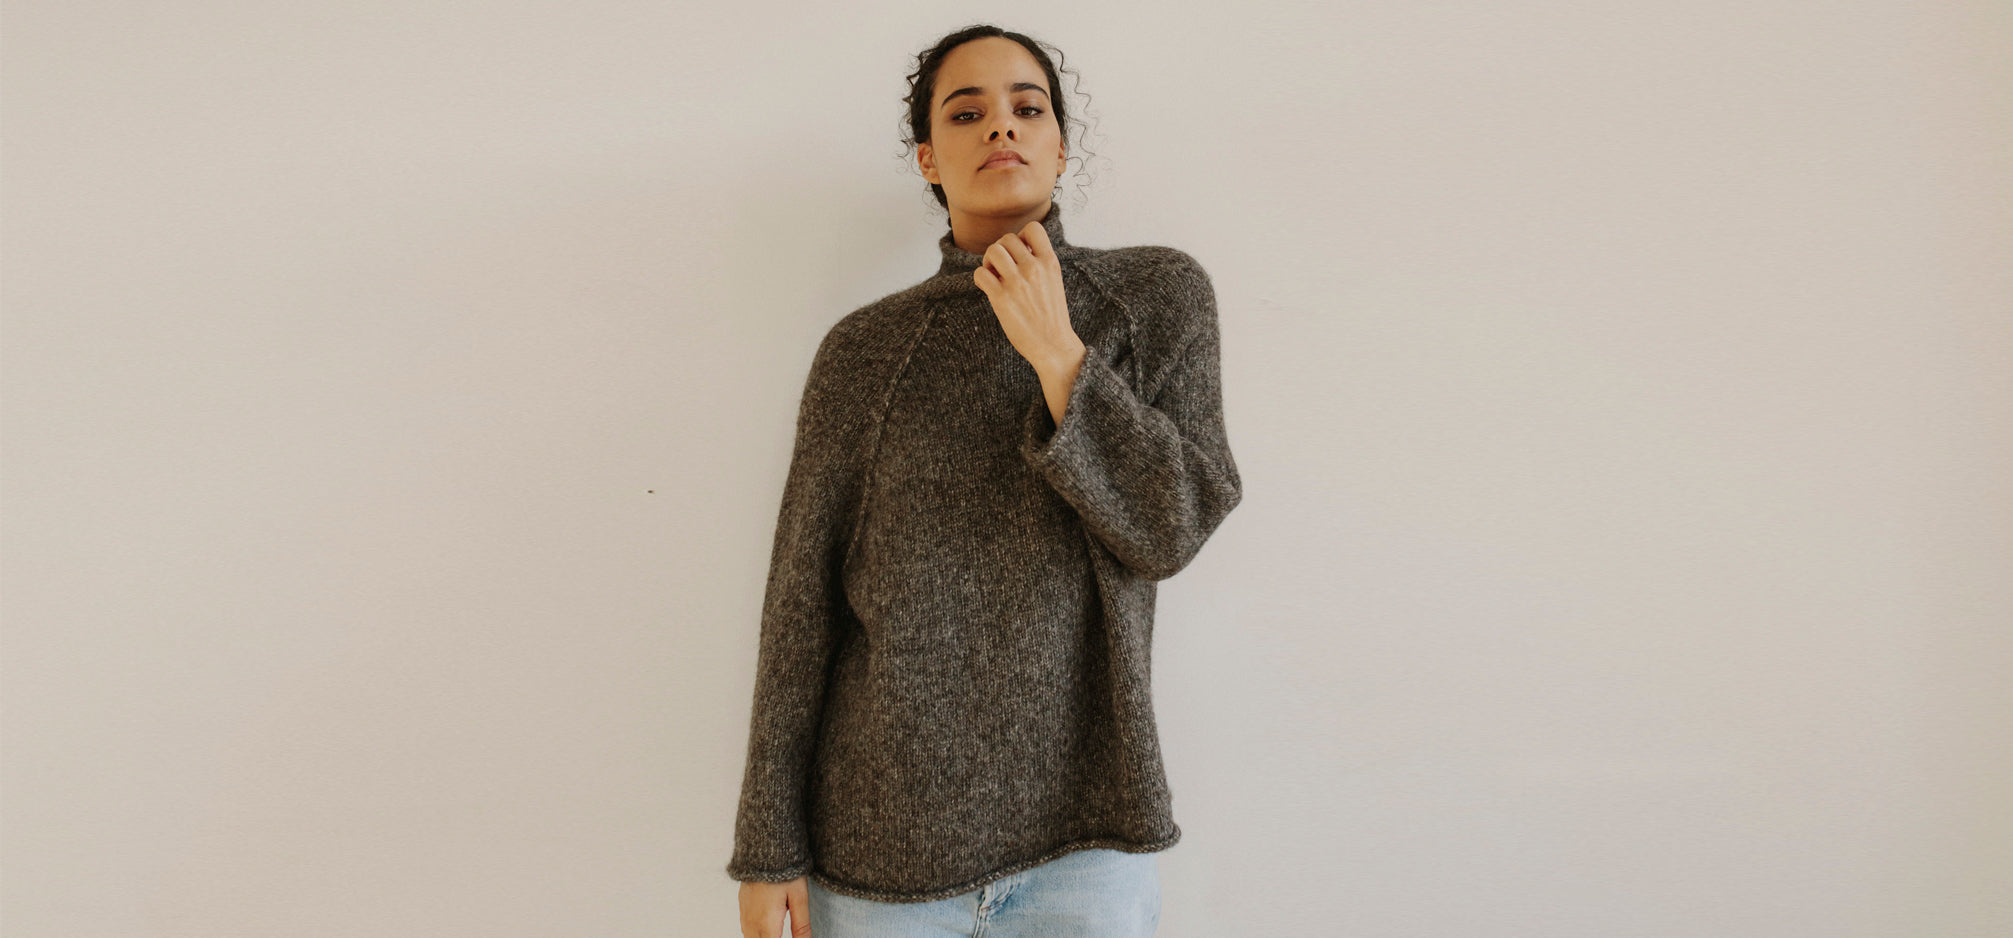 Woman with her hand on her chin wearing a funnel neck brown sweater.